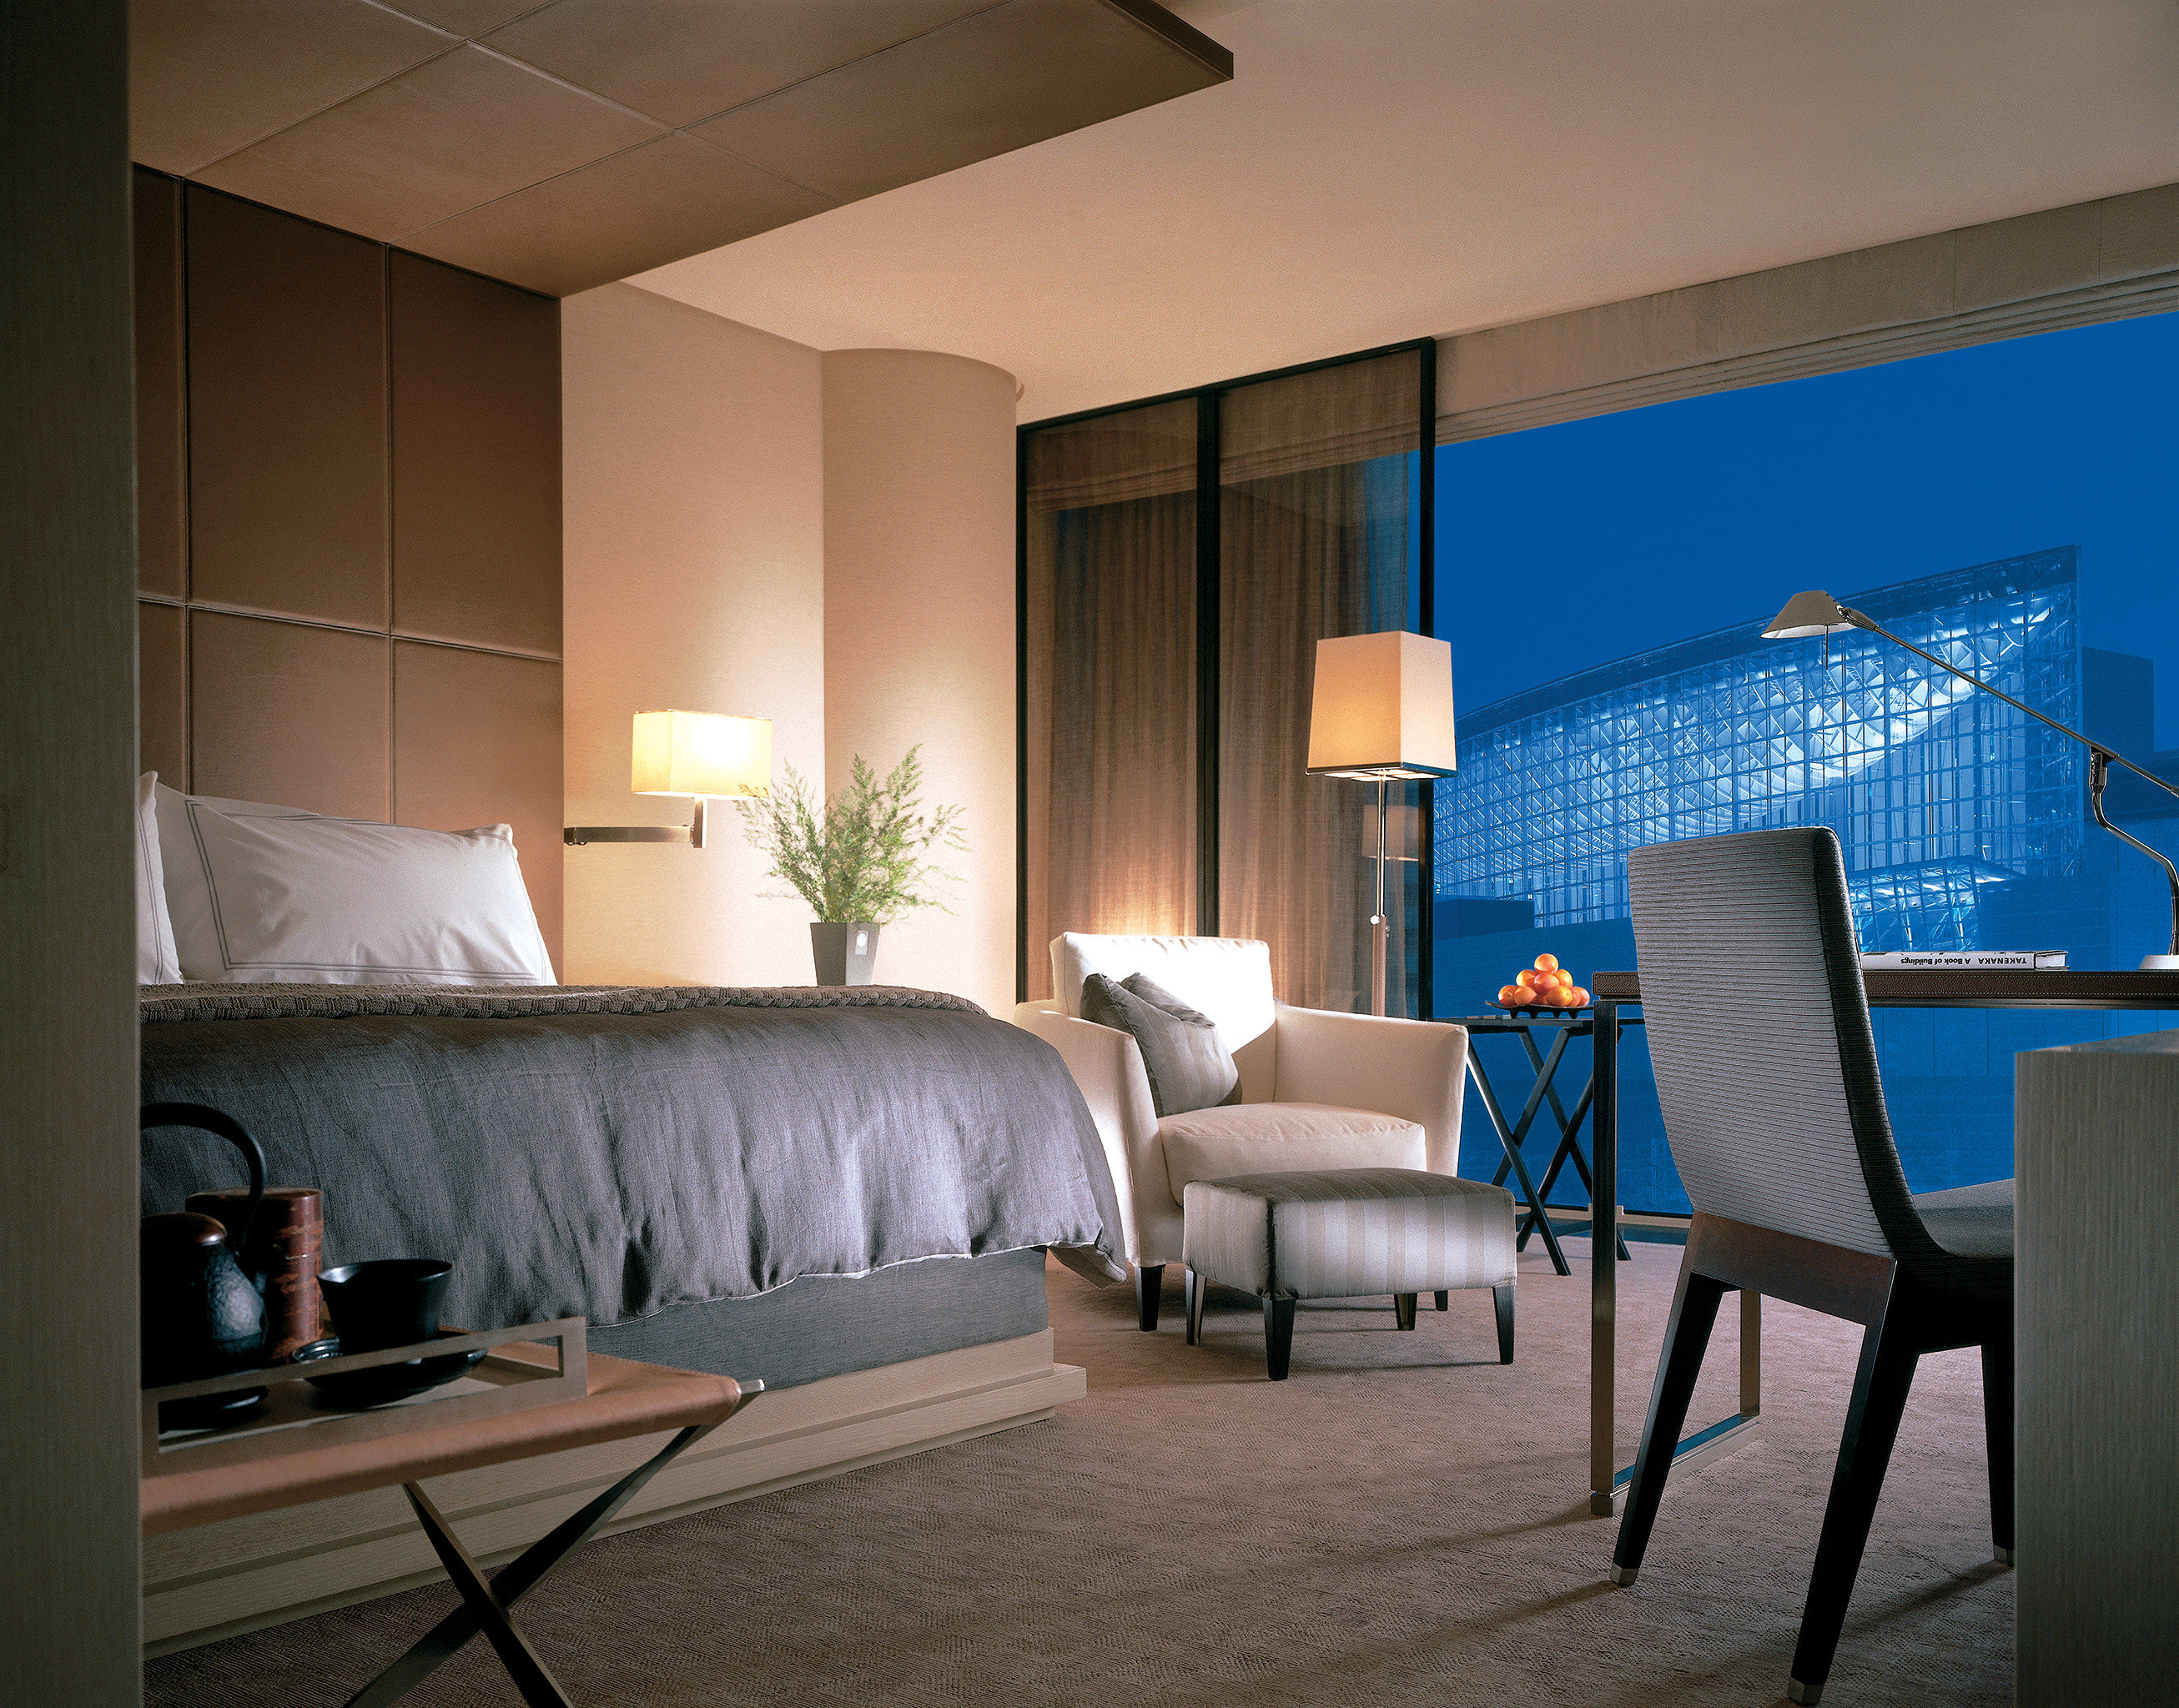 Bedroom City Elegant Luxury Modern Scenic views chair property house living room home Suite